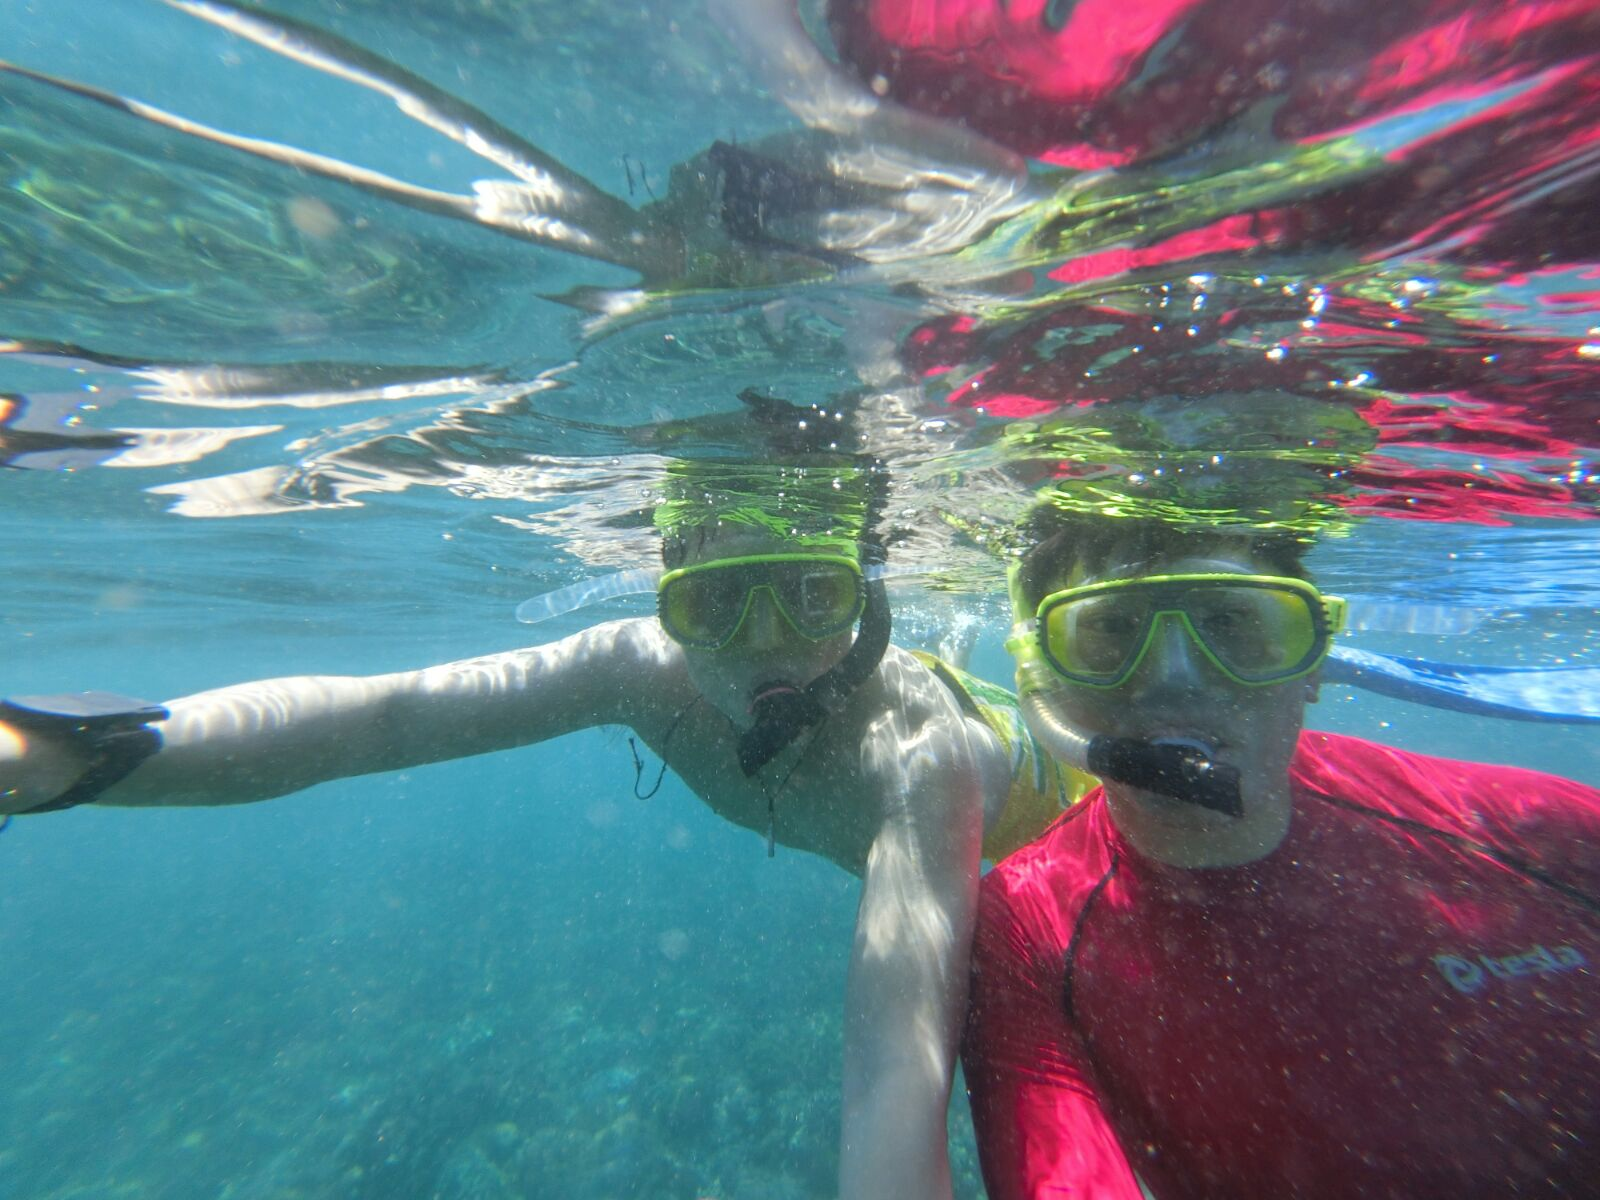 Snorkelling in Bali with the FR100. Photo credit to Keith Yuen, www.travelinspiration360.com